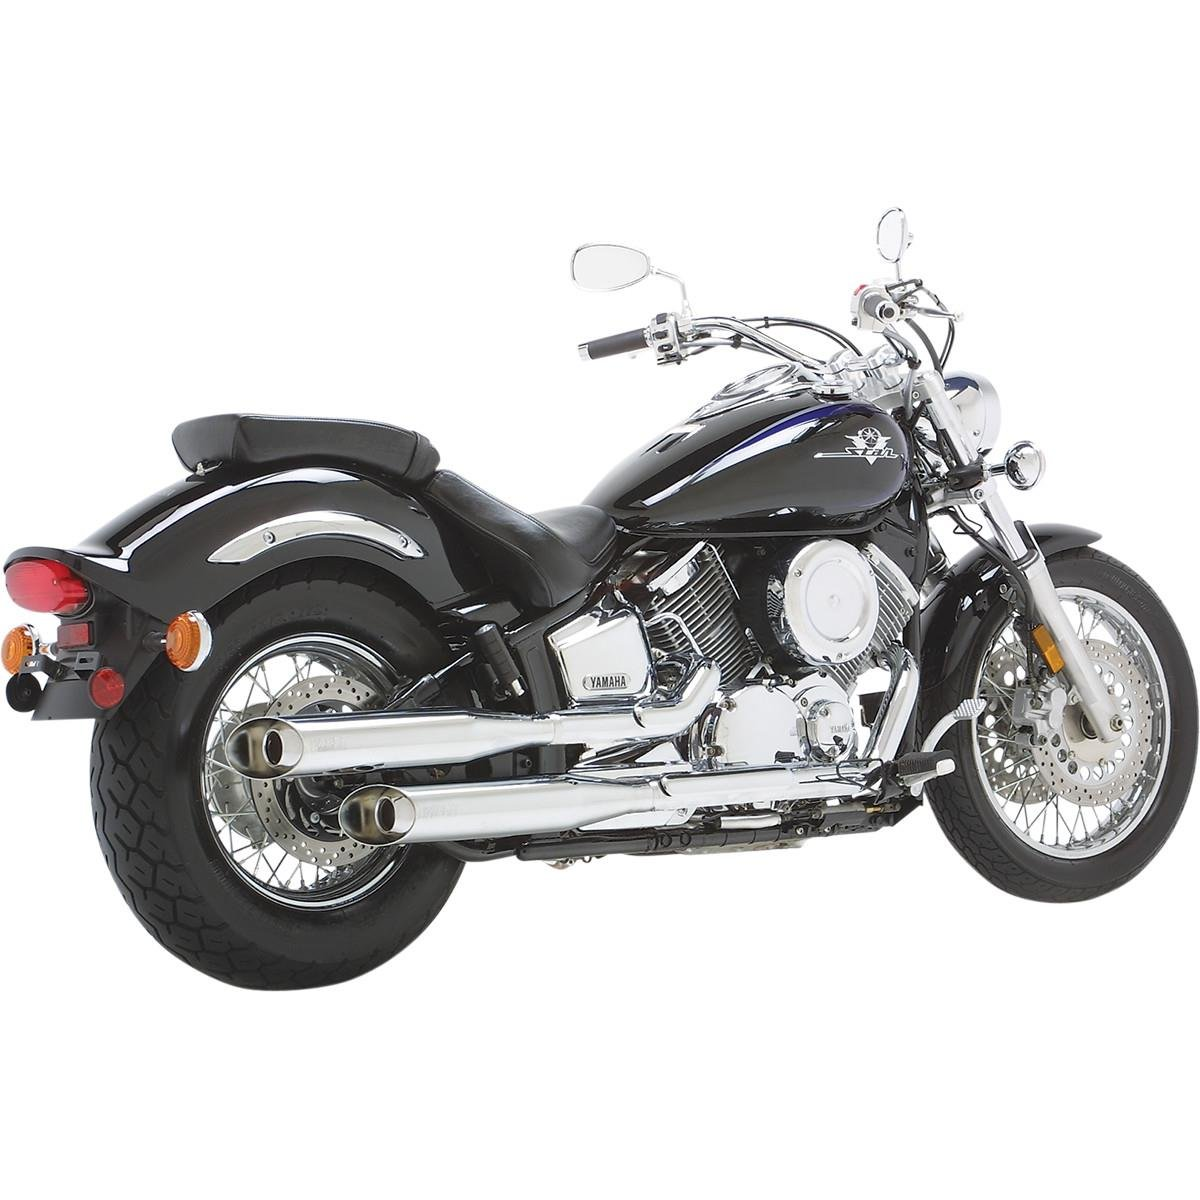 Vance and Hines Classic II Dual Slip-On Exhaust for Yamaha 1999-2009 V-Star 110 - One Size